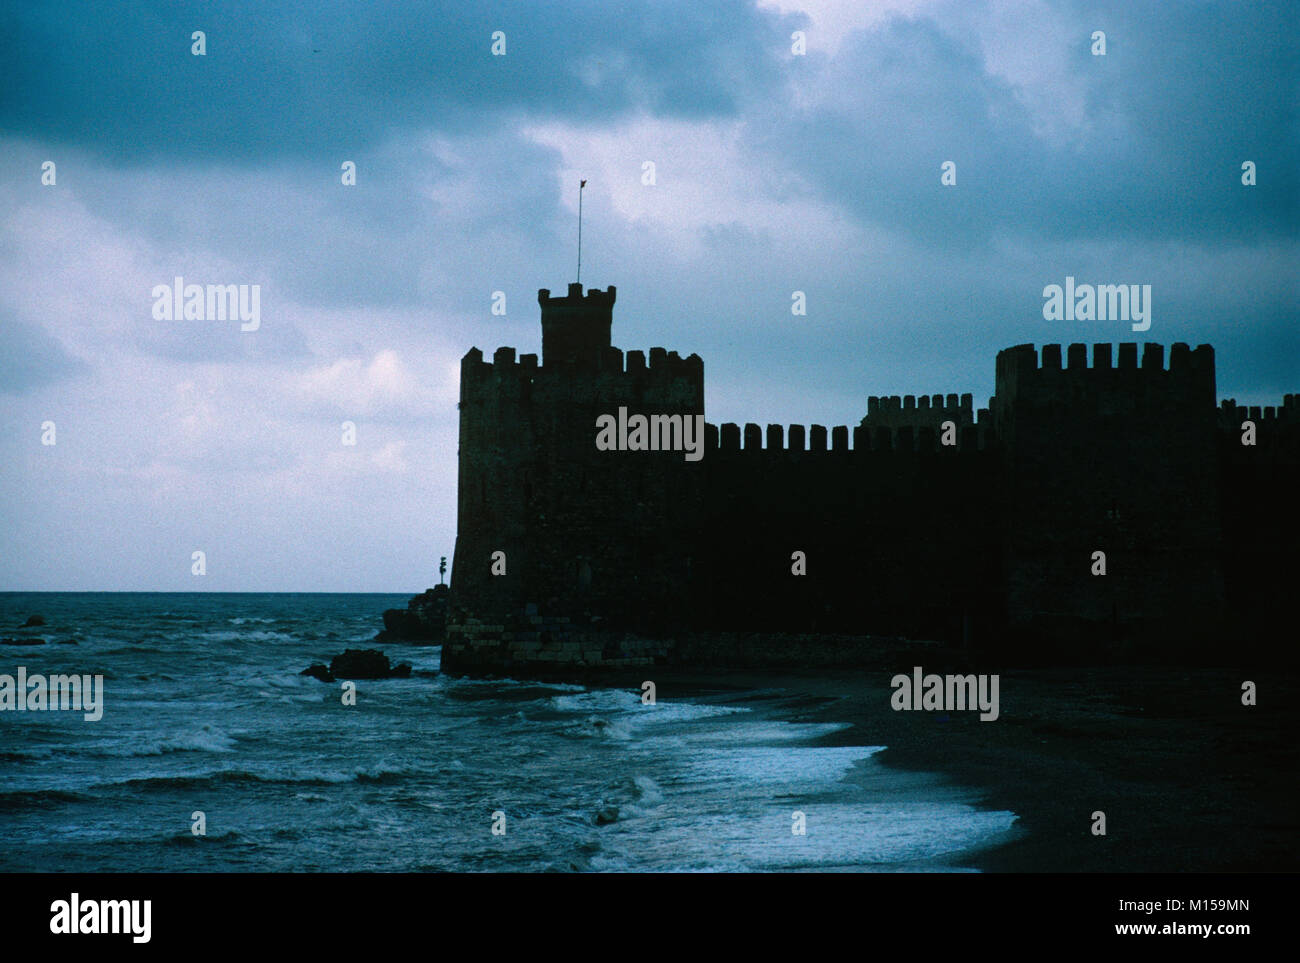 The Dark Outline of Mamure Castle (1221) and Storm Clouds near Anamur on the Mediterranean Coast, Turkey - Stock Image